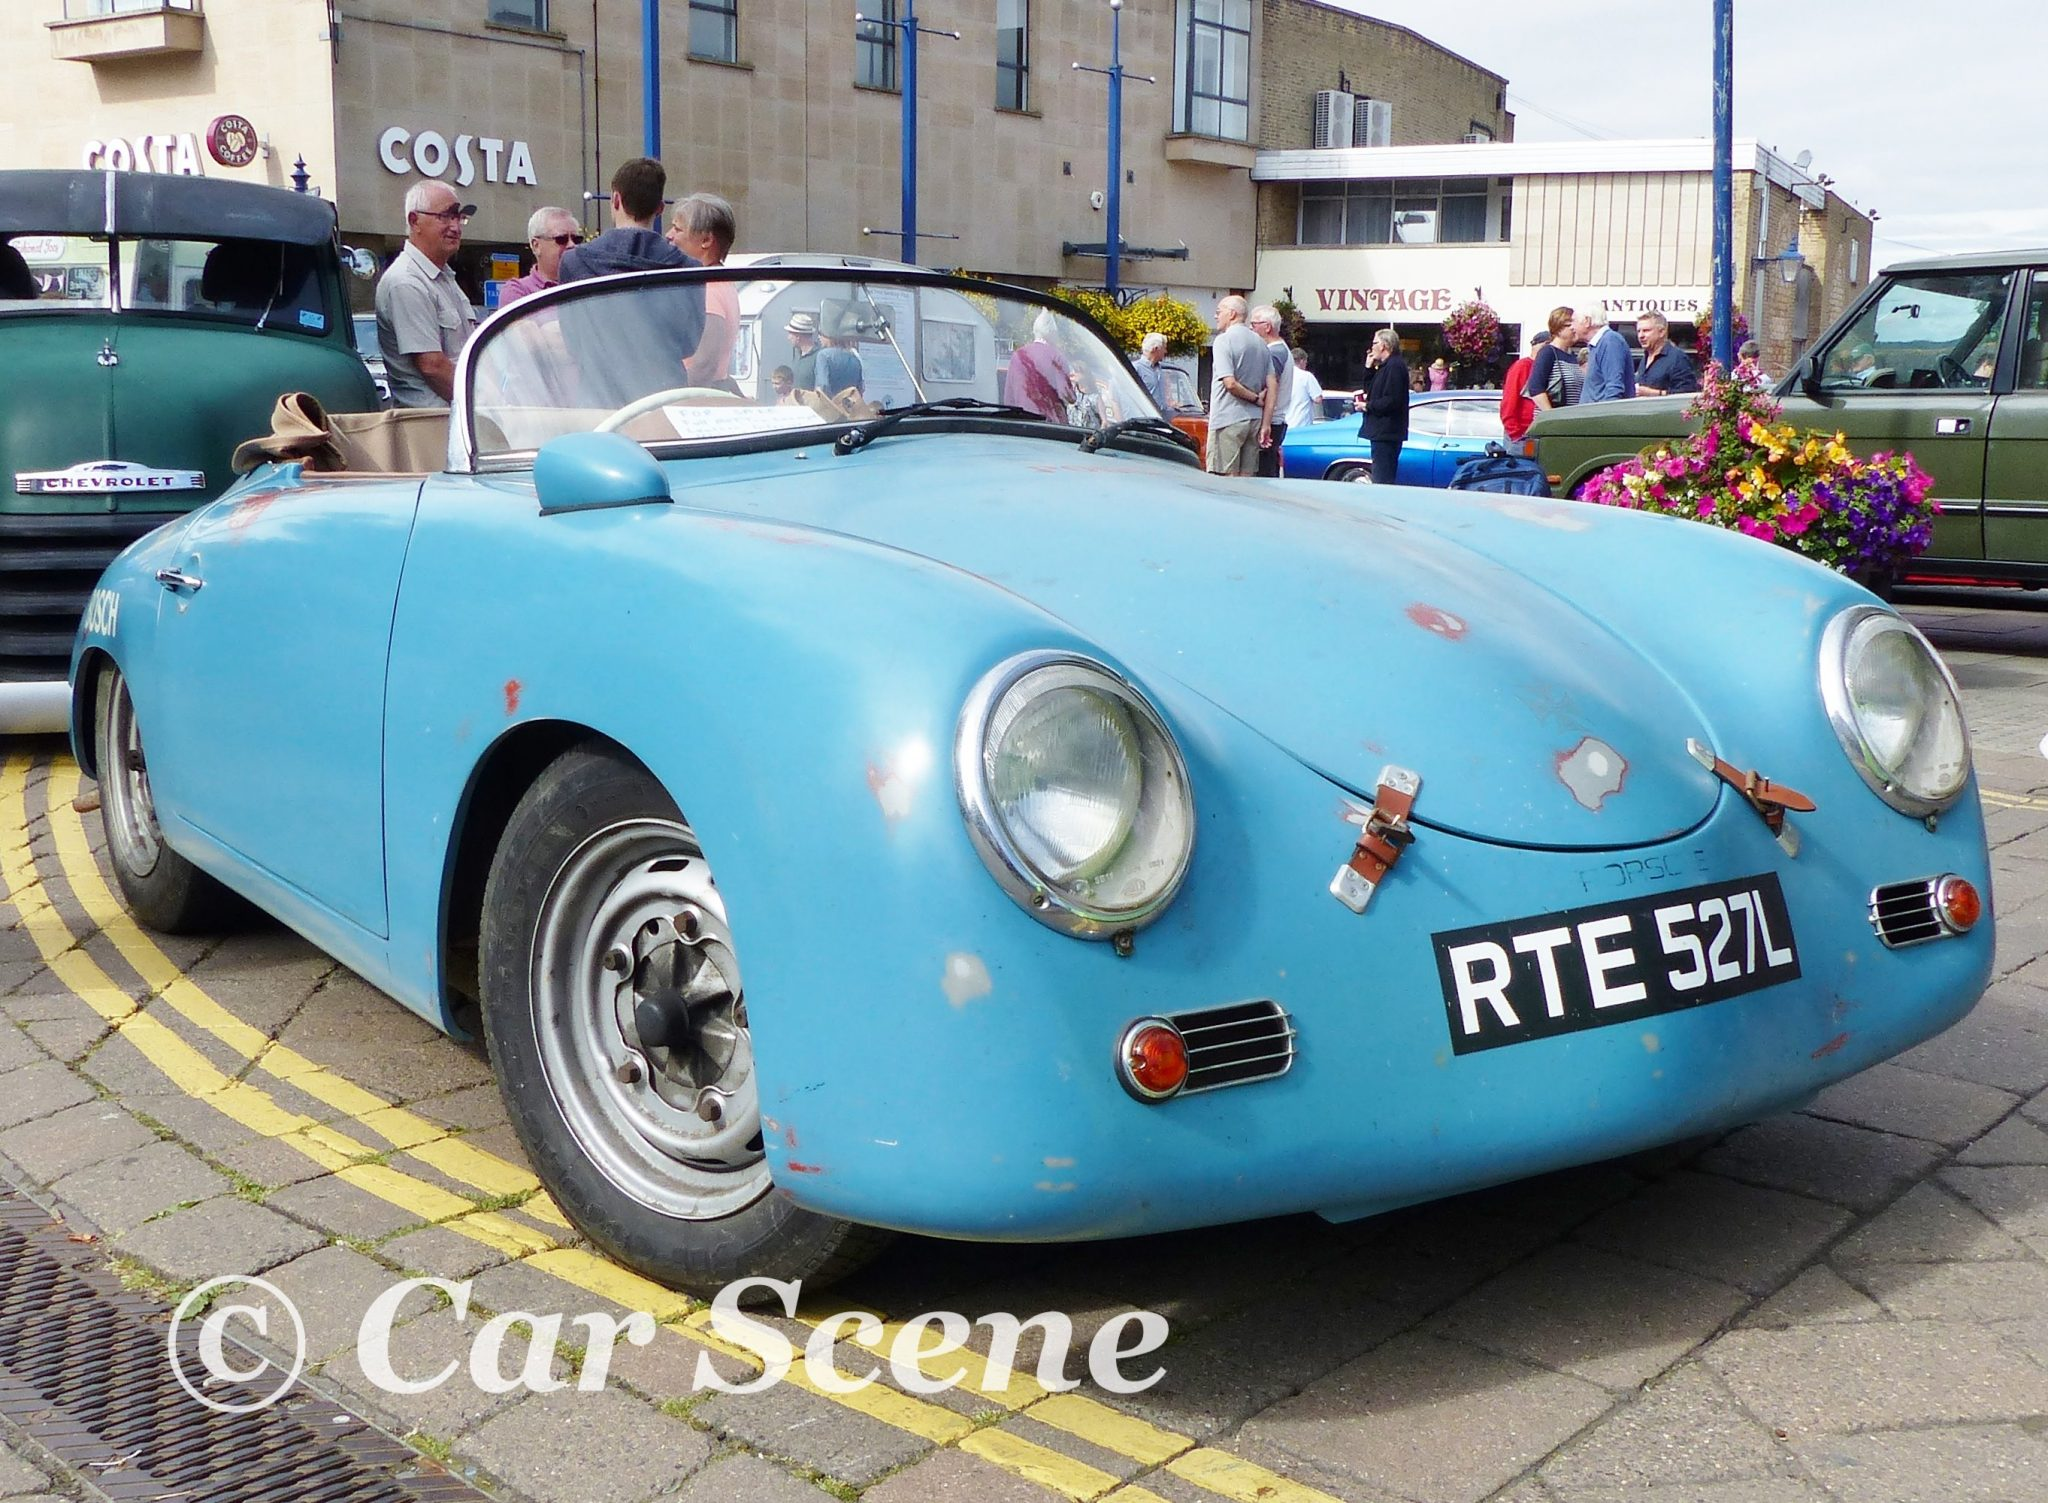 1950s Porsche 356 cabriolet front three quarters view